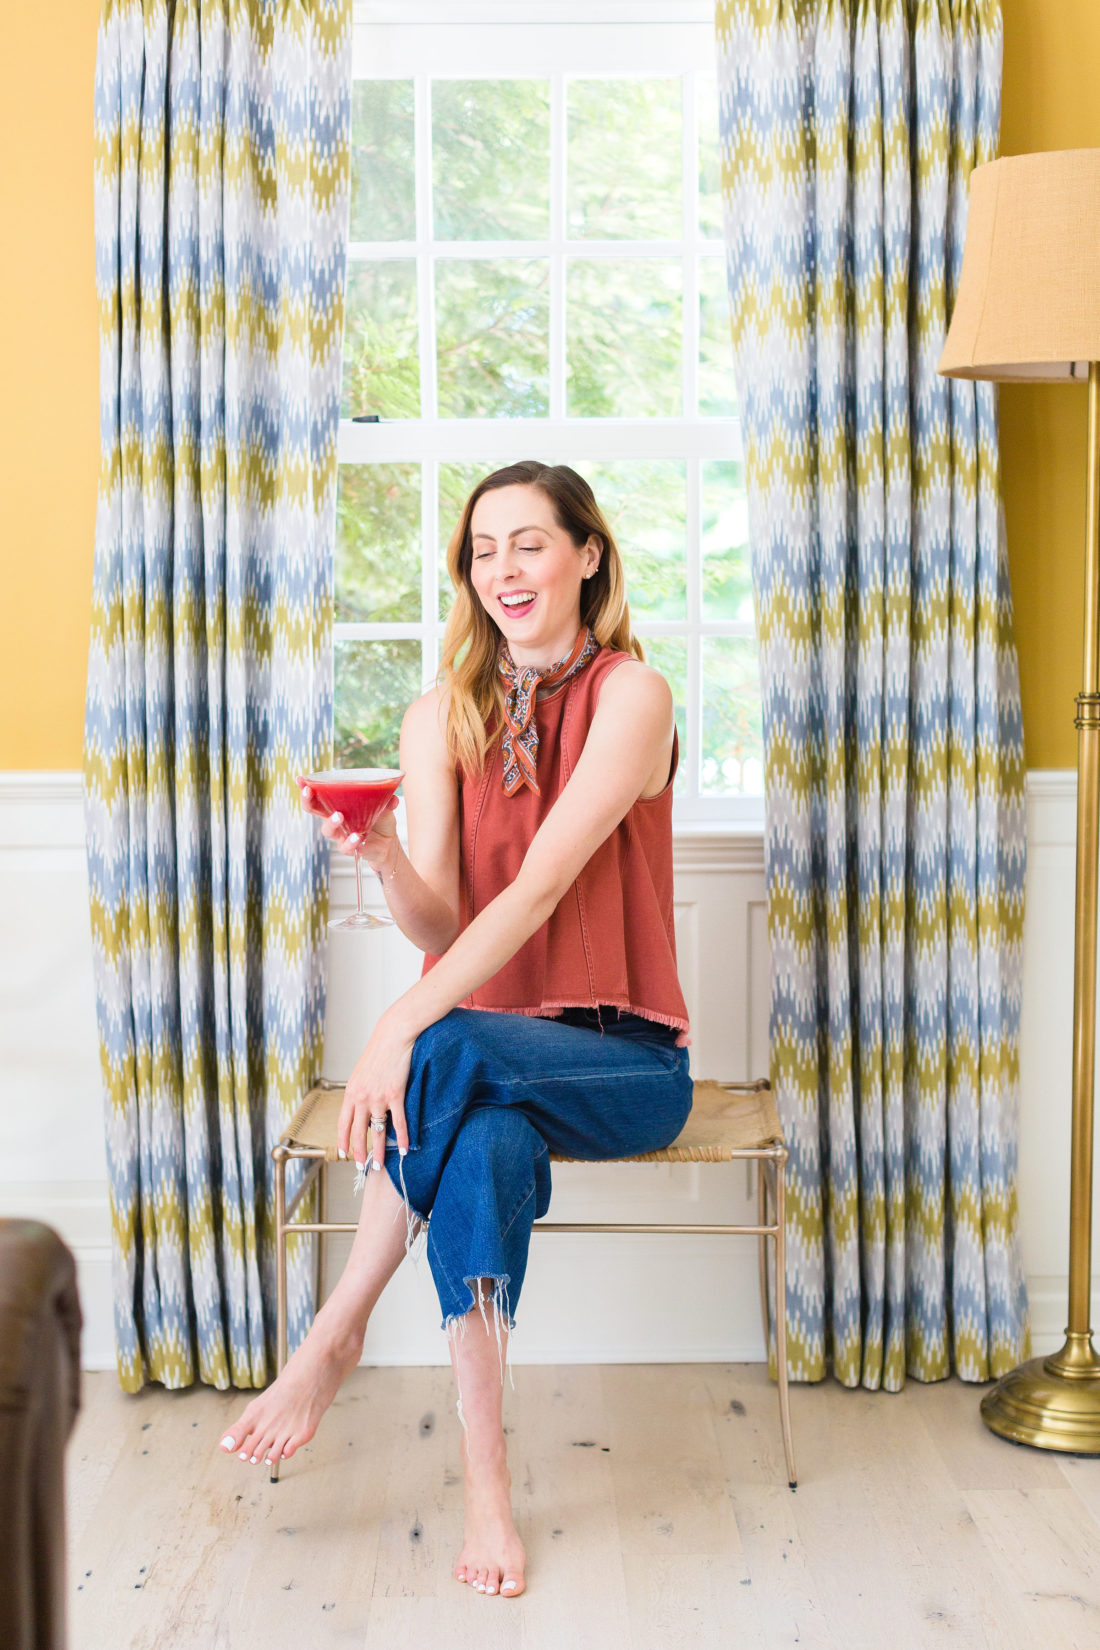 Eva Amurri Martino sits in the living room of her Connecticut home, sipping a blood orange and ginger martini